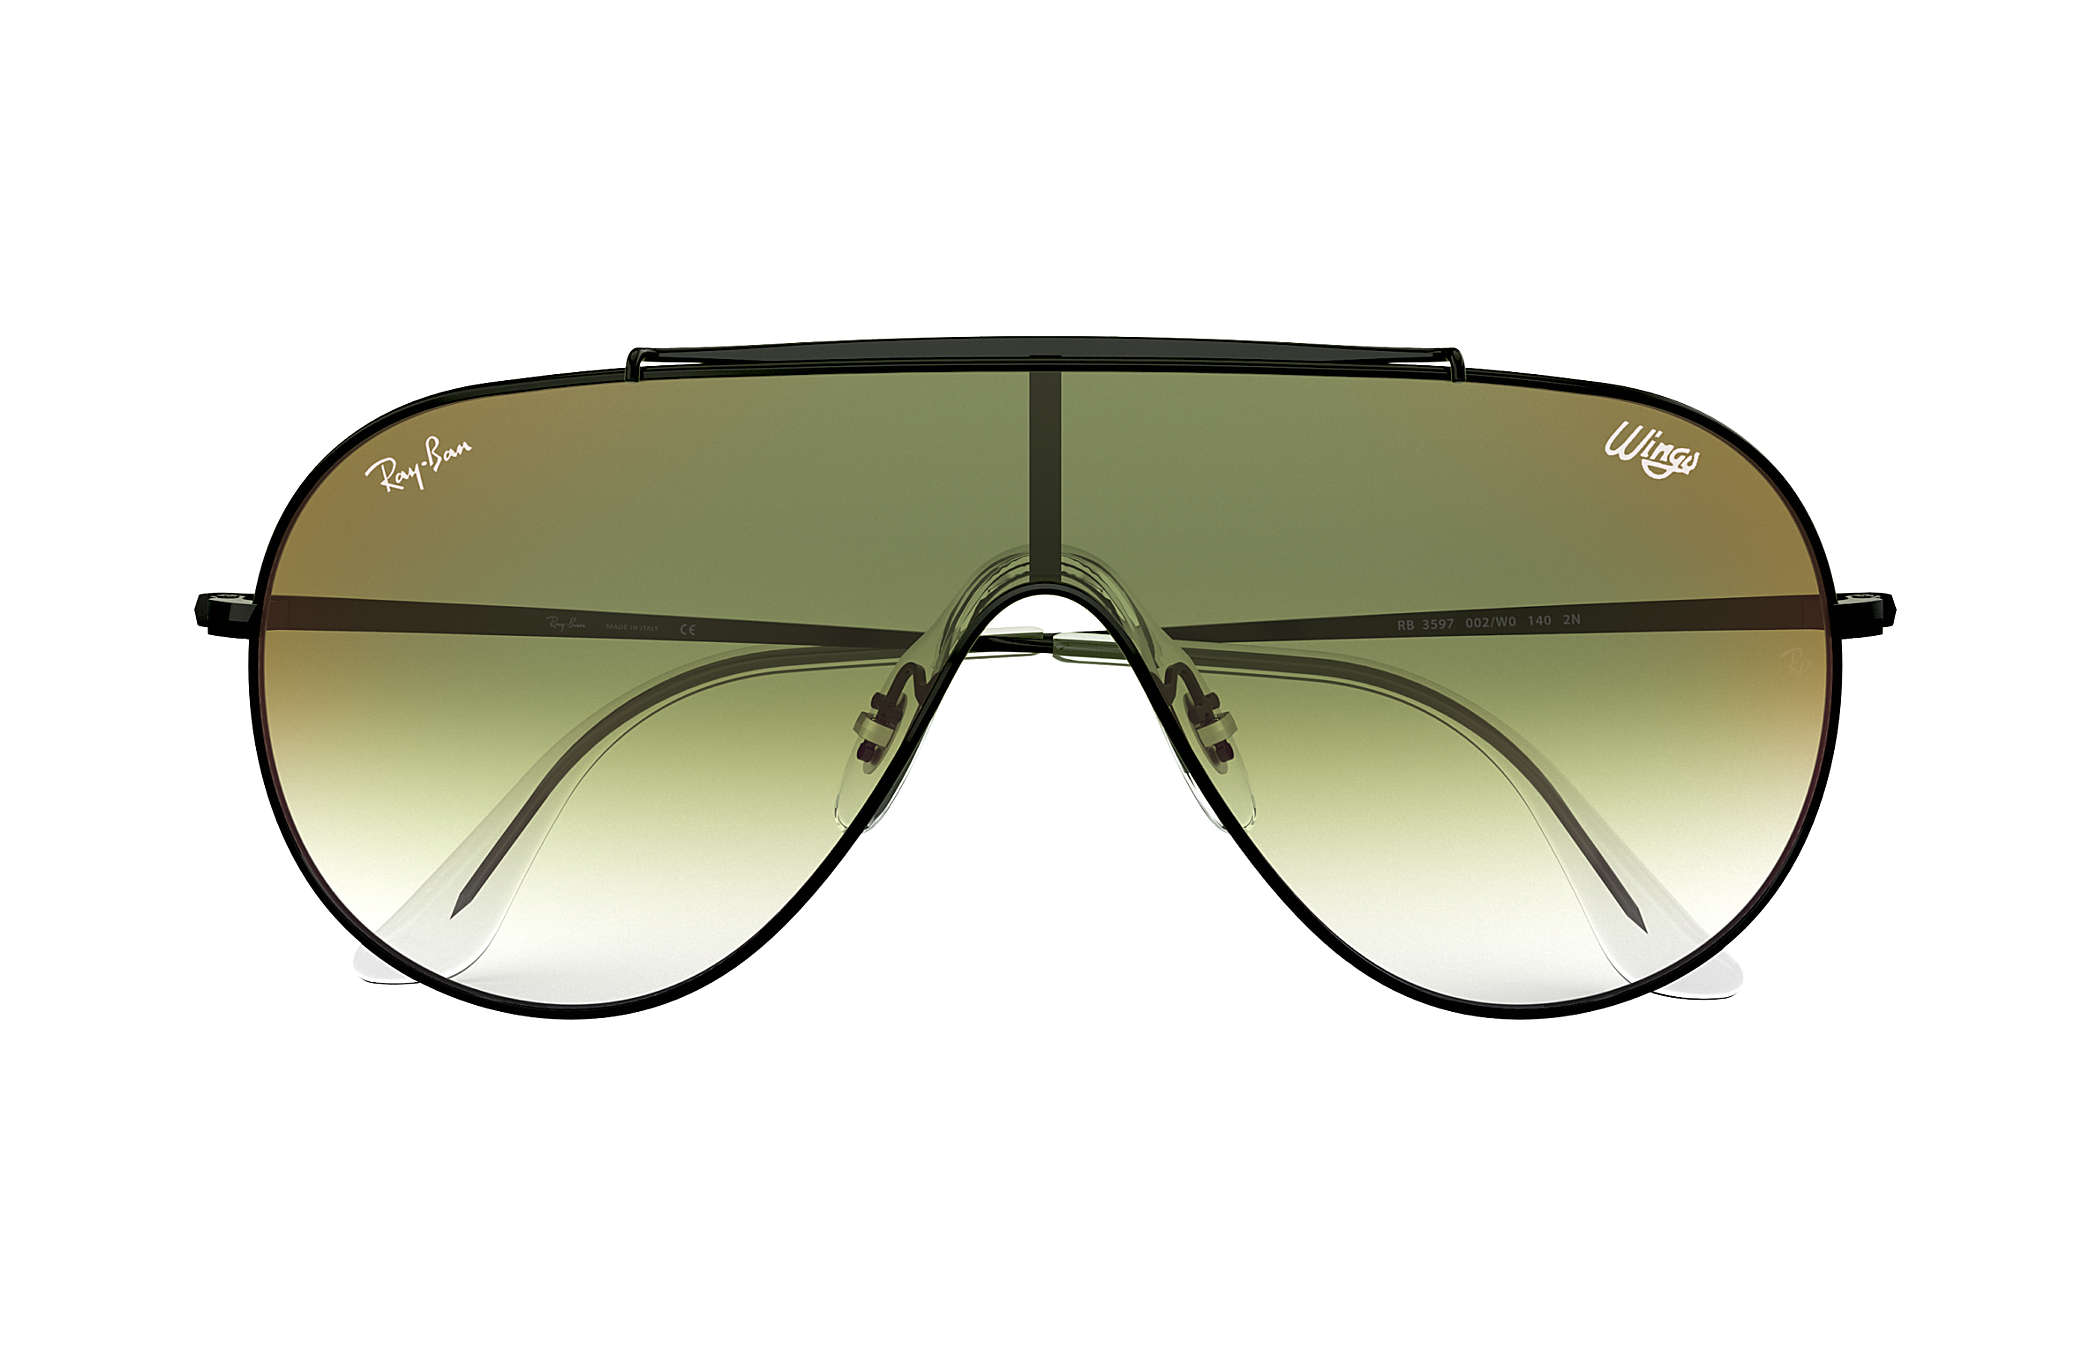 318230e66b30f Ray-Ban Wings RB3597 Black - Metal - Green Lenses - 0RB3597002 W033 ...